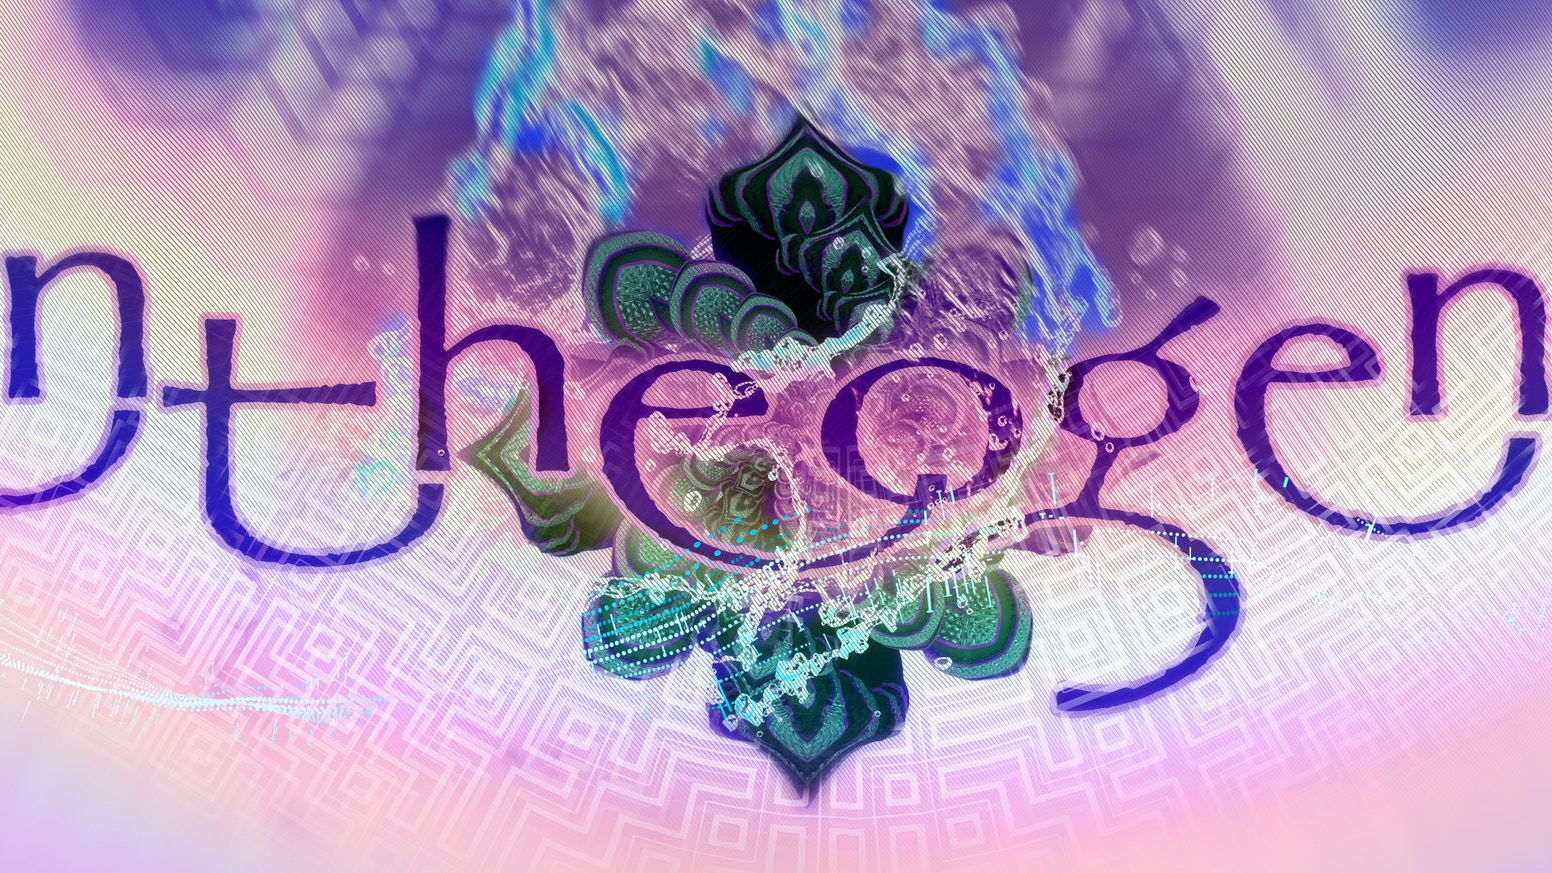 A high quality 4xCD digipack containing all the digital releases of Entheogenic available on physical format for the first time.